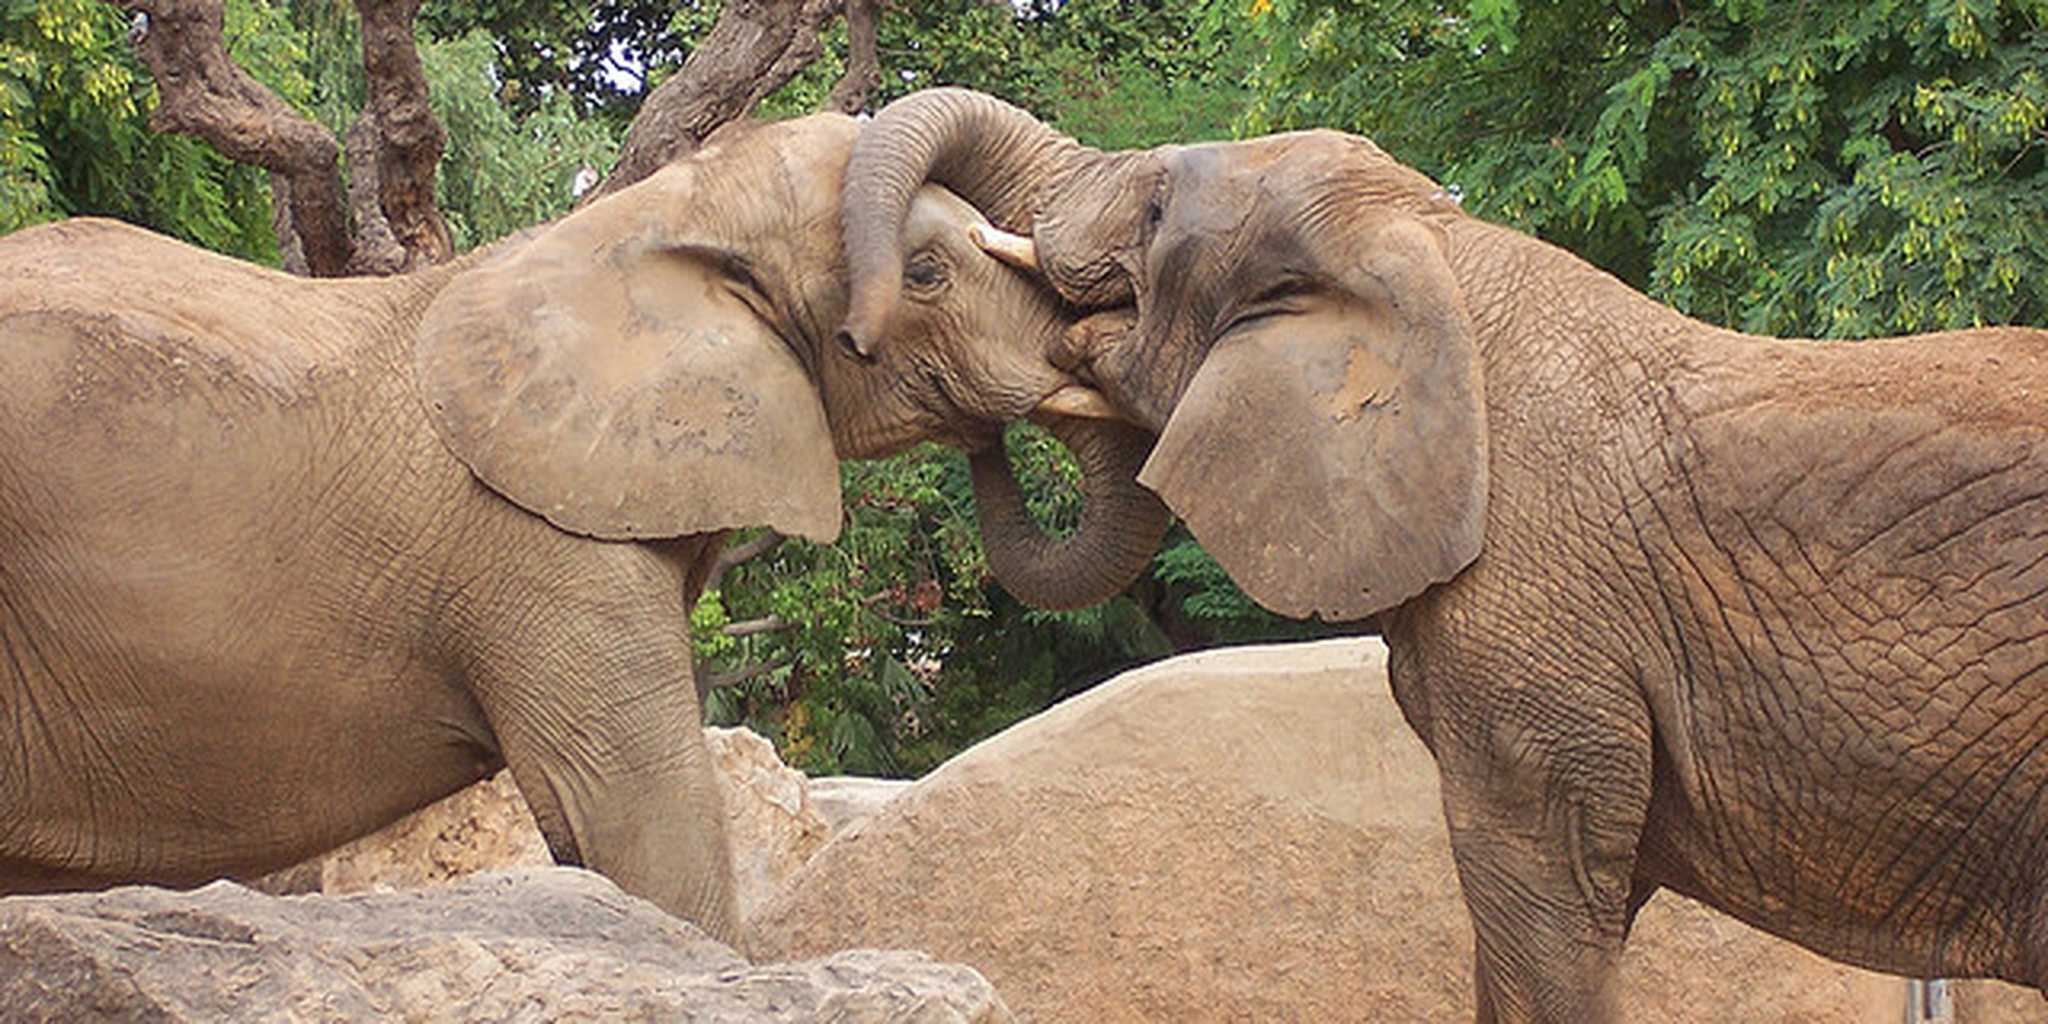 elephants making out